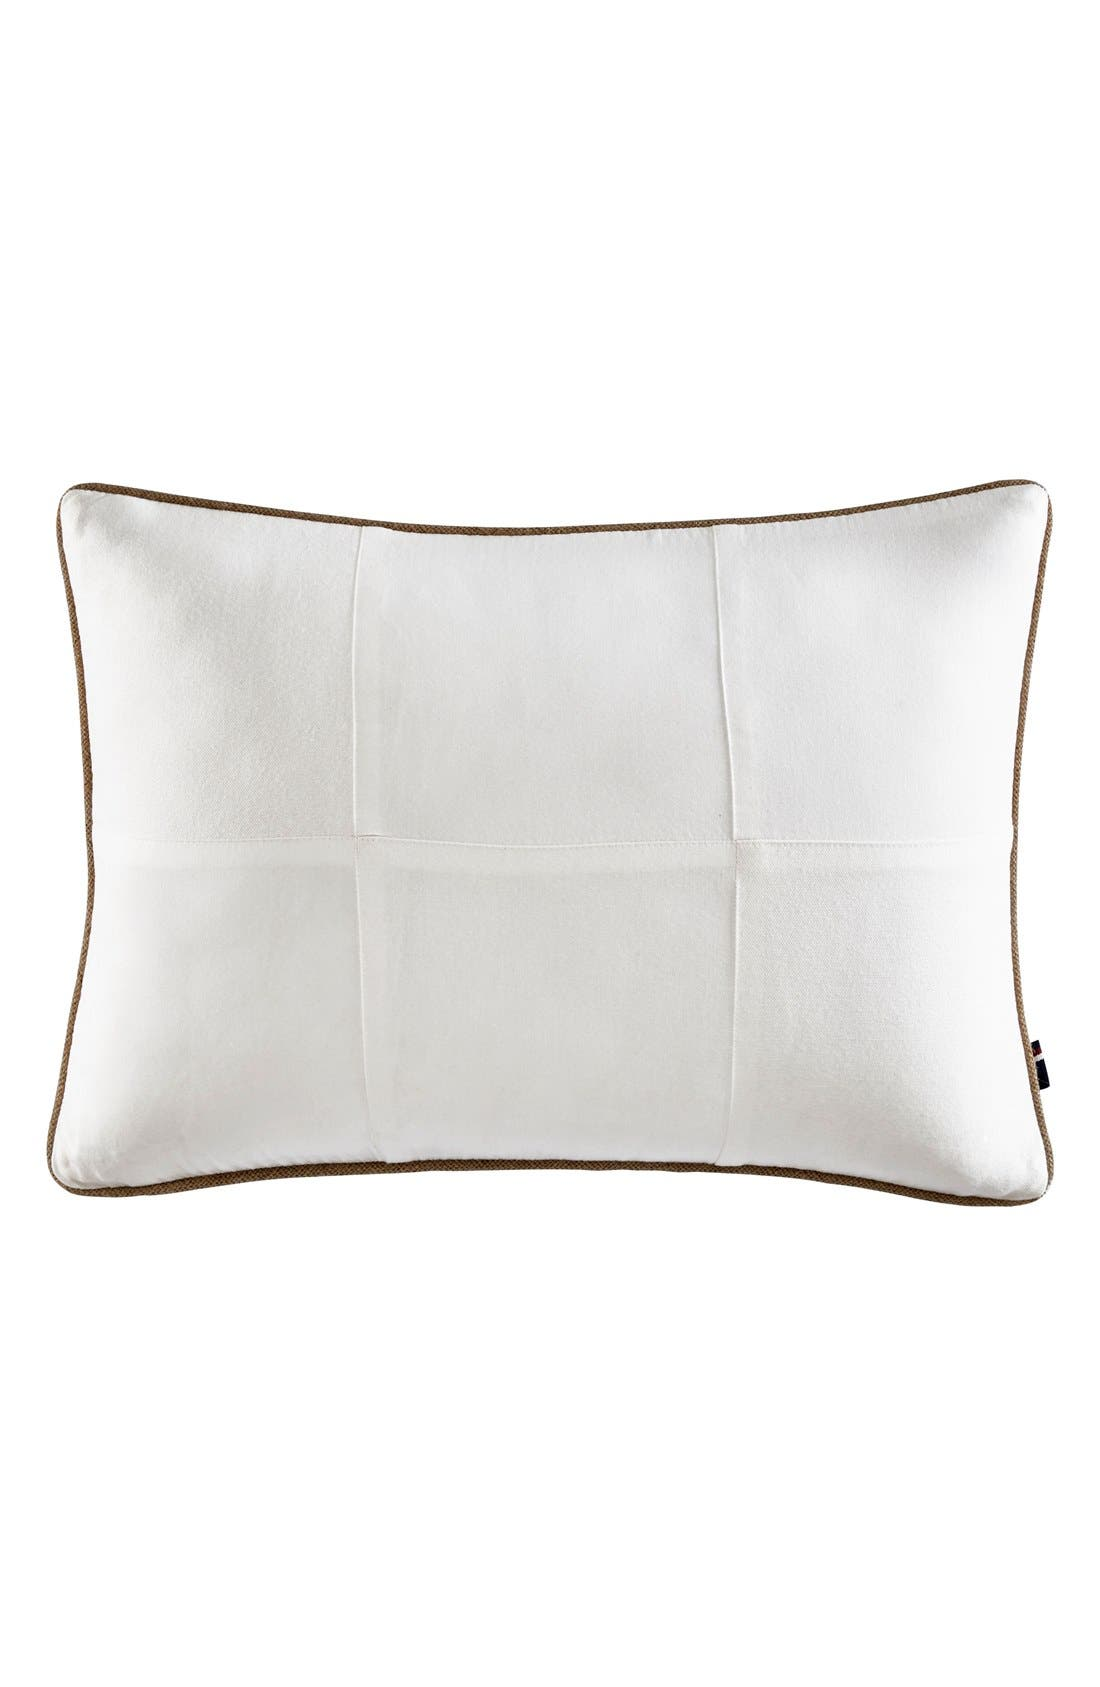 Main Image - Tommy Hilfiger Longview Accent Pillow